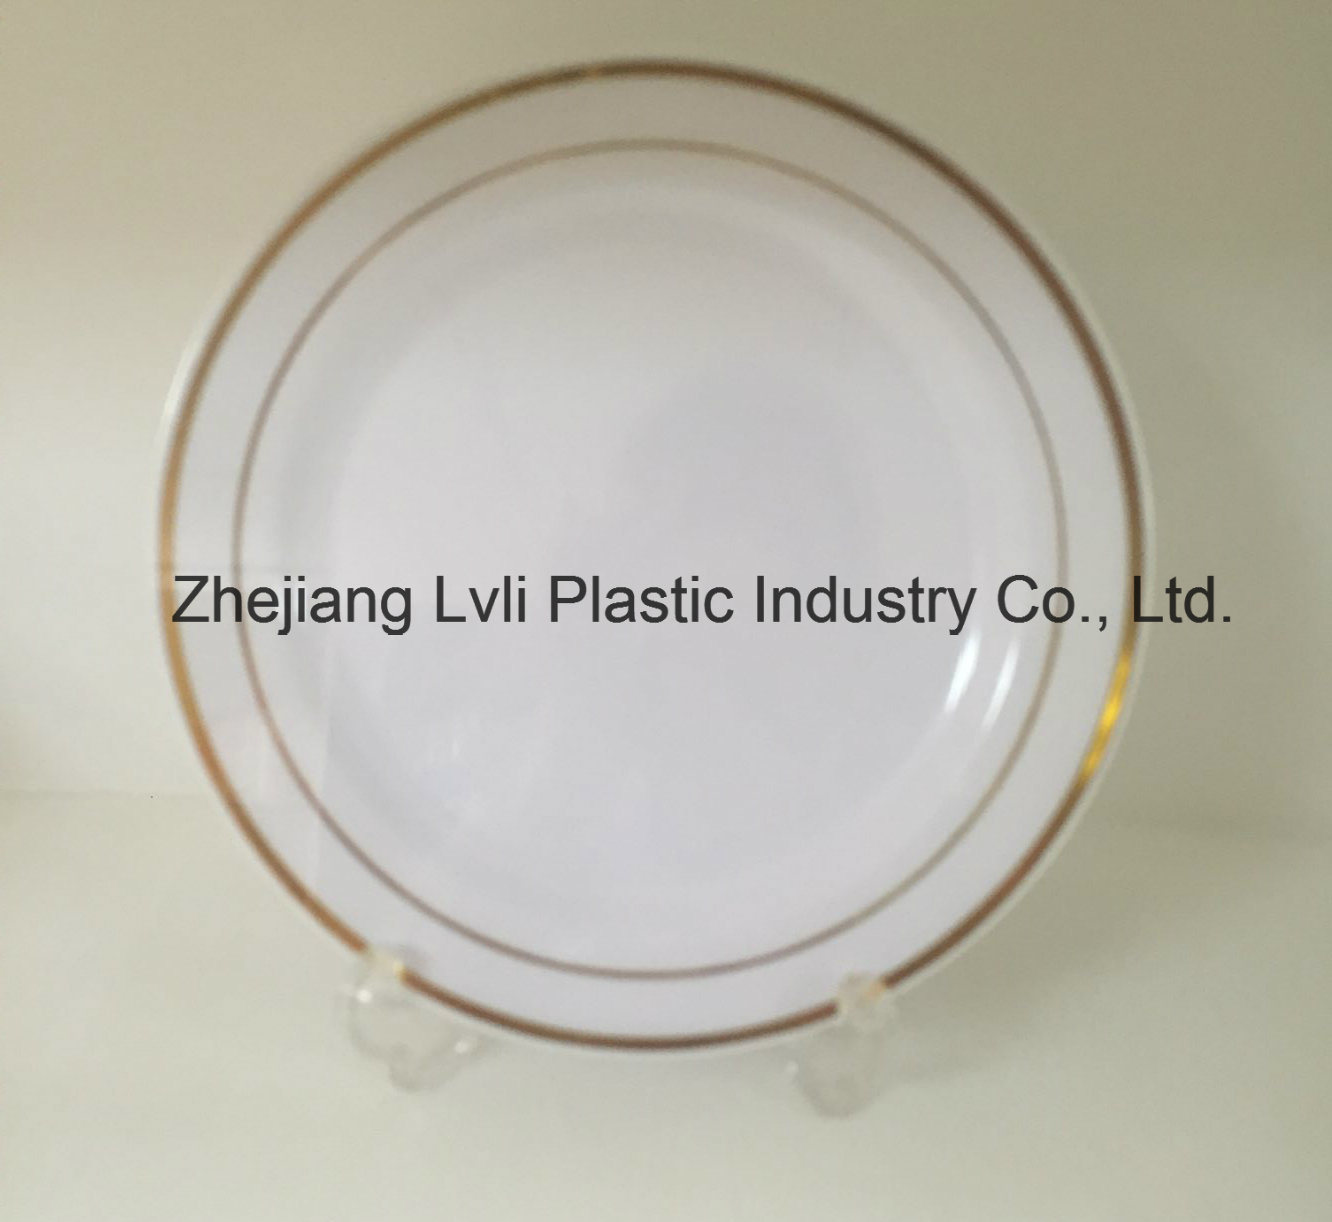 Plastic Plate, Disposable, Tableware, Tray, Dish, Colorful, PS, SGS, Hot Stamp Plate, PA-04